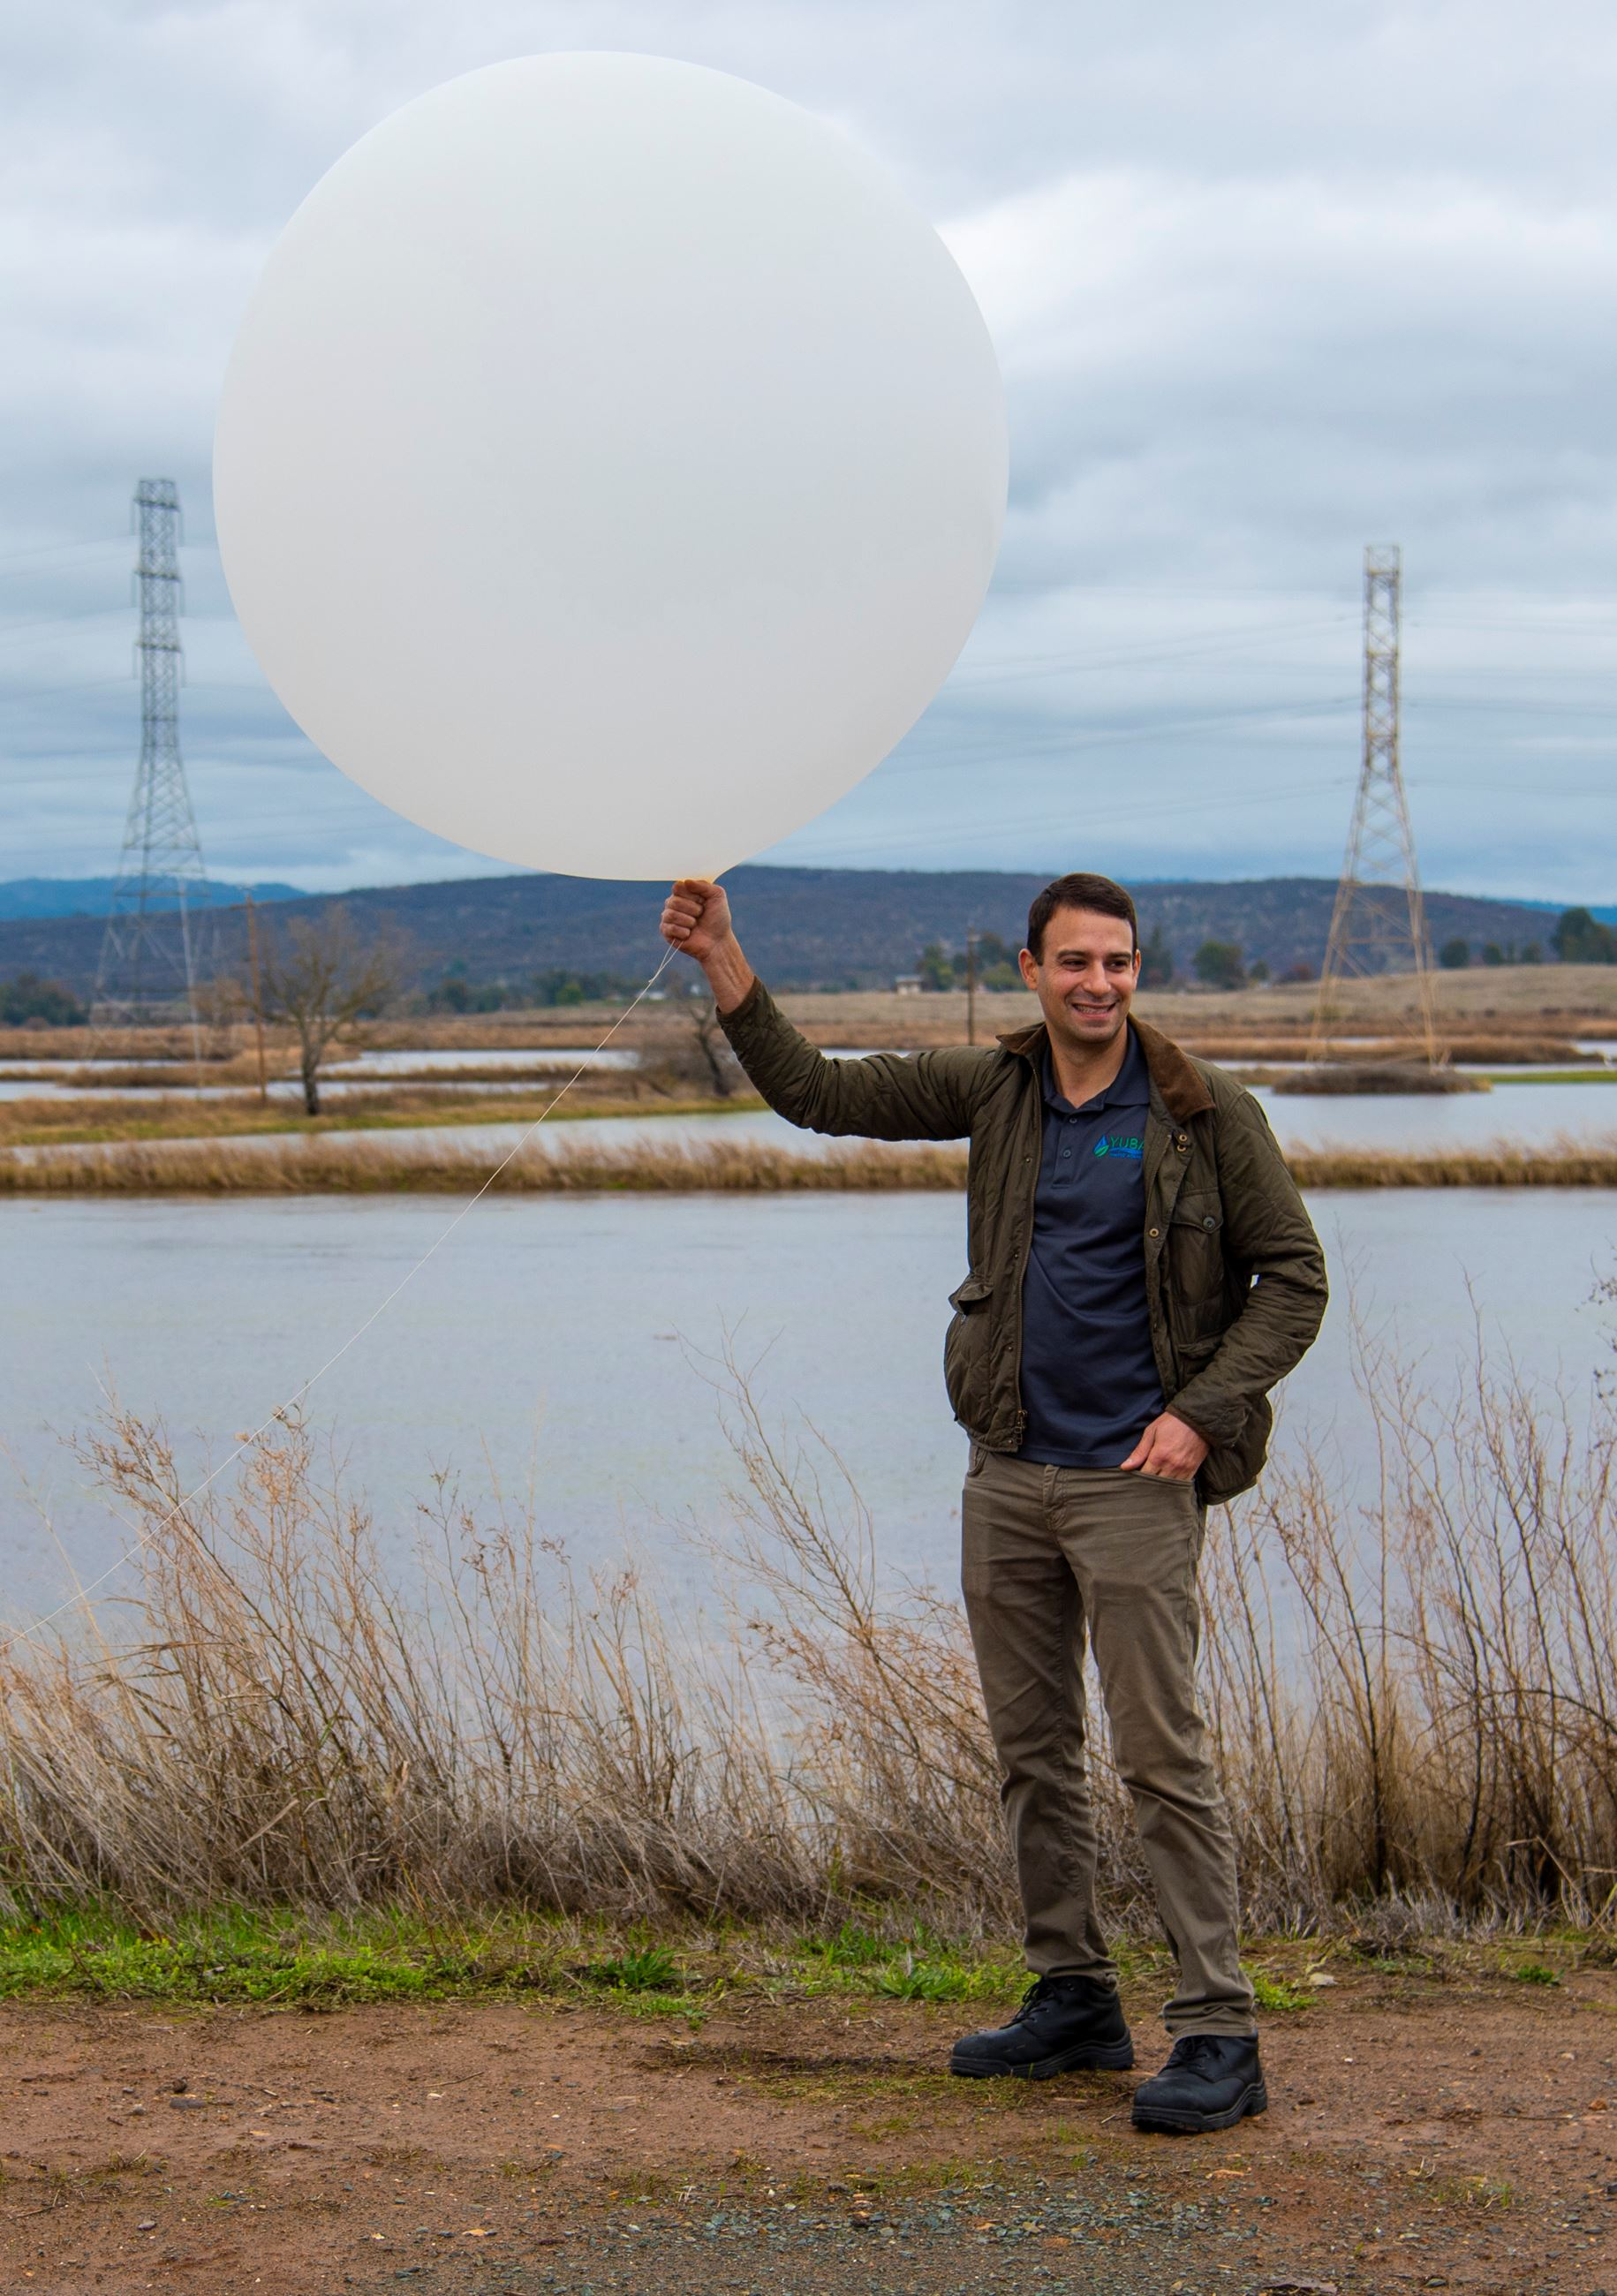 A Yuba Water Agency employee holds up a large weather balloon in front of flooded rice fields